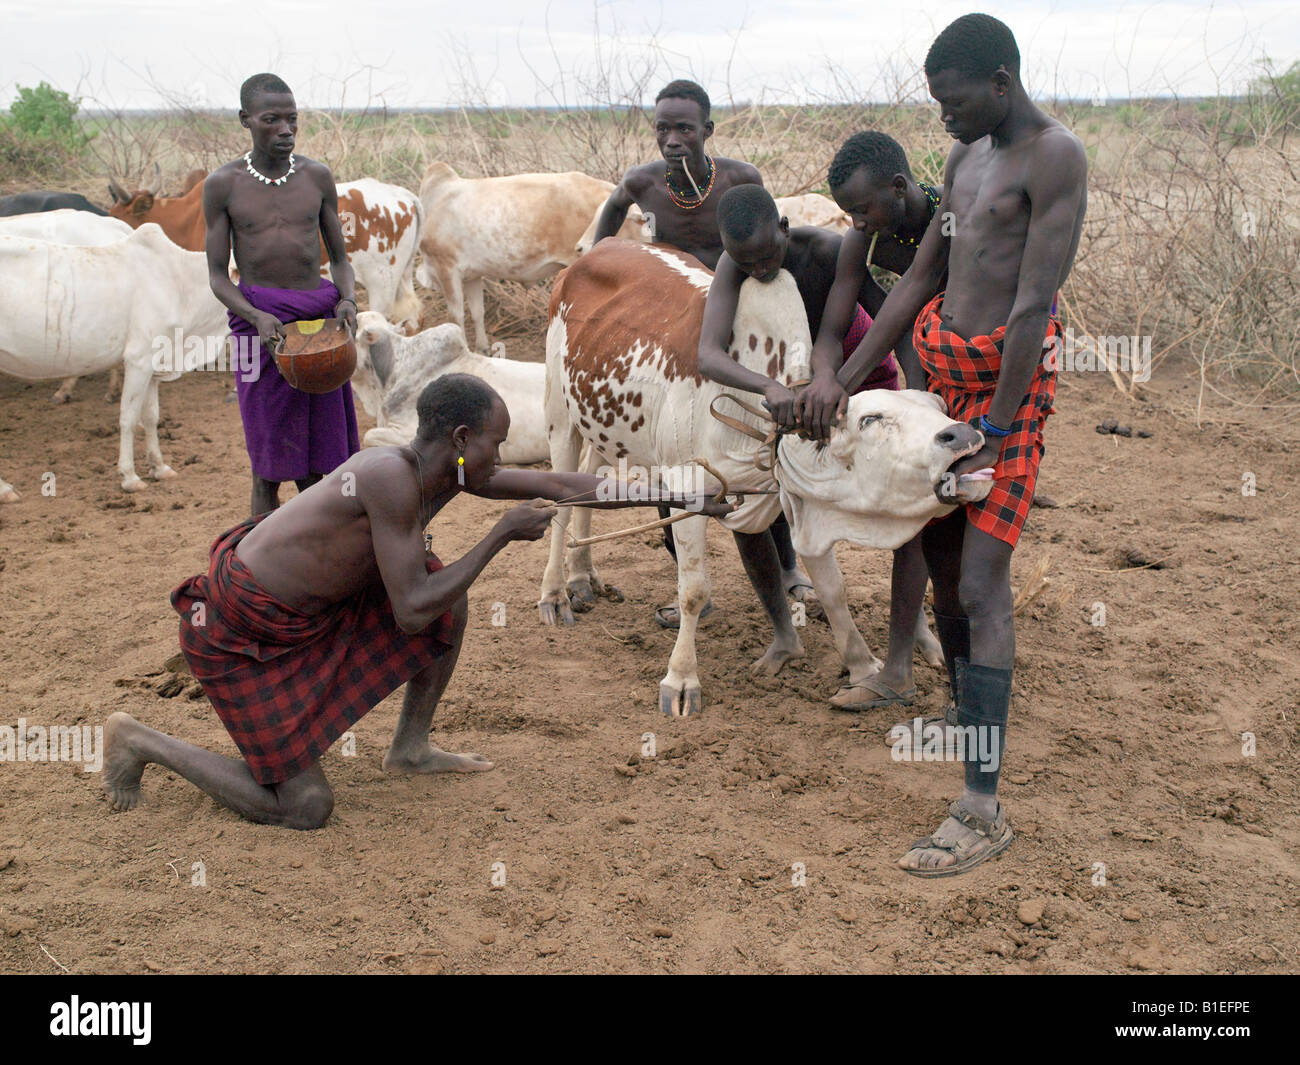 A Group Of Nyag'atom Men Draw Blood From A Steer Early In The Morning